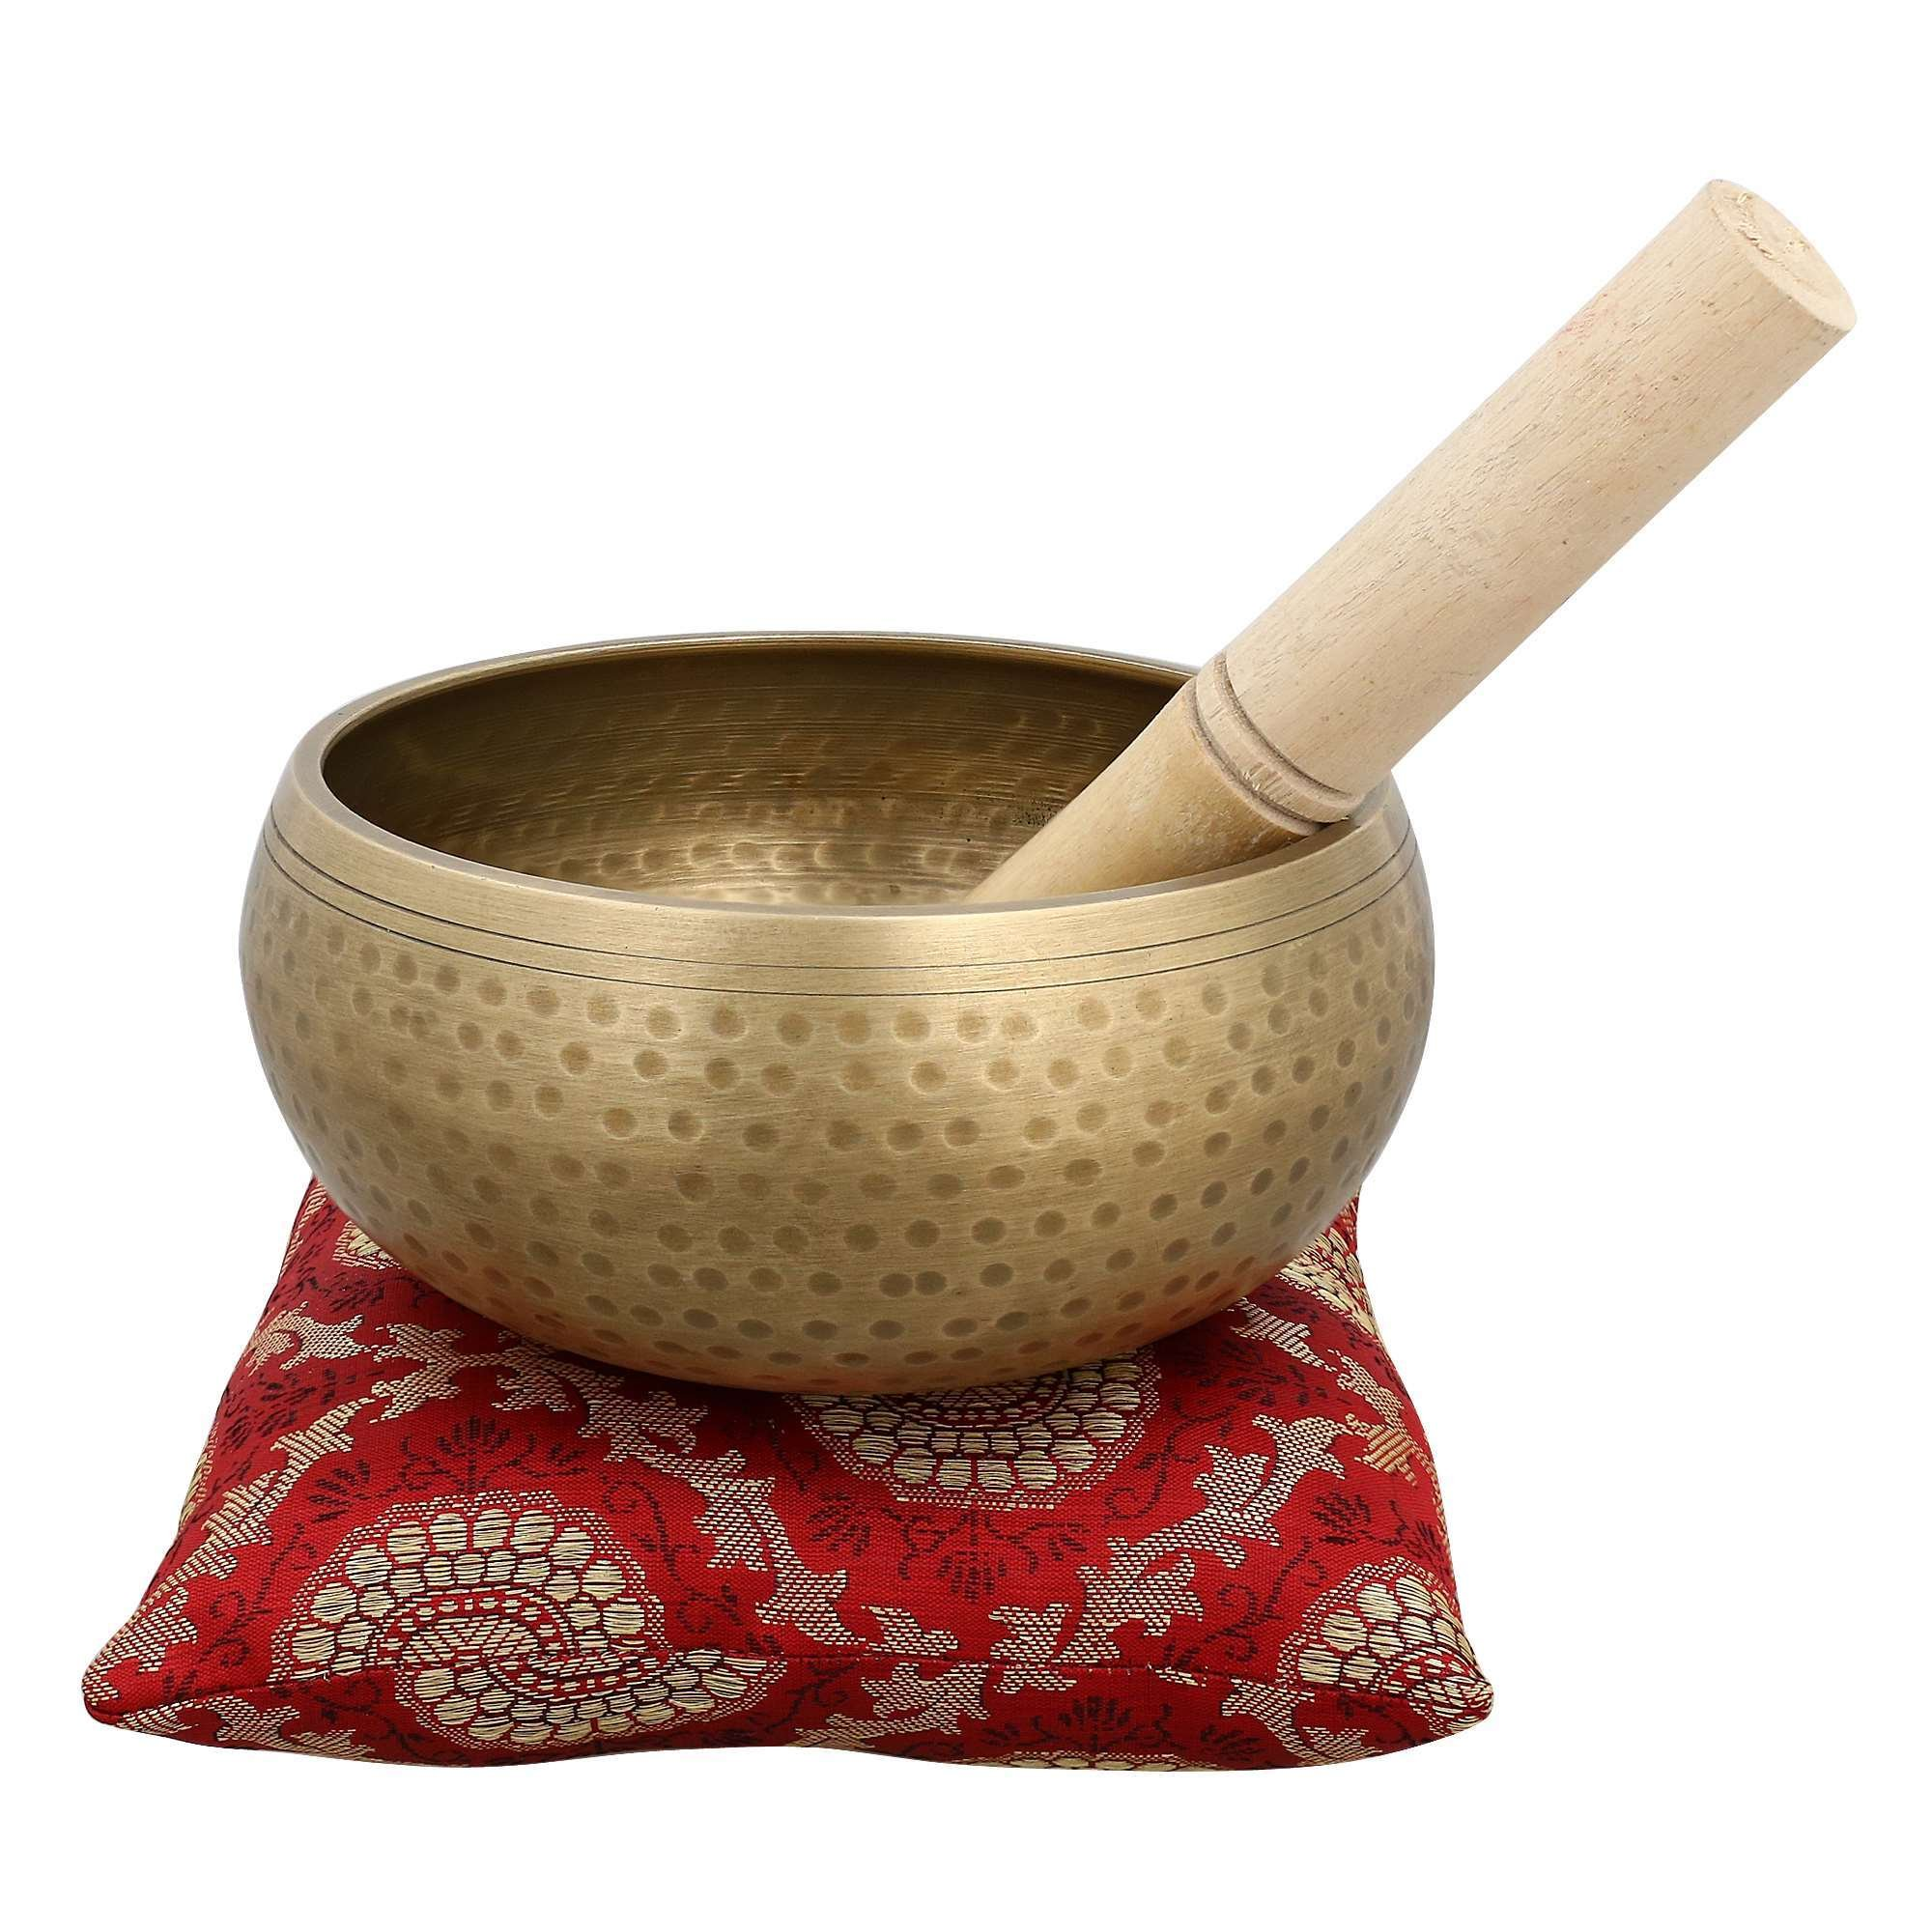 Tibetan Buddhist Large Singing Bowl with Cushion from India for Meditation Sound Healing Prayer Percussion Musical Instrument 5 Inch